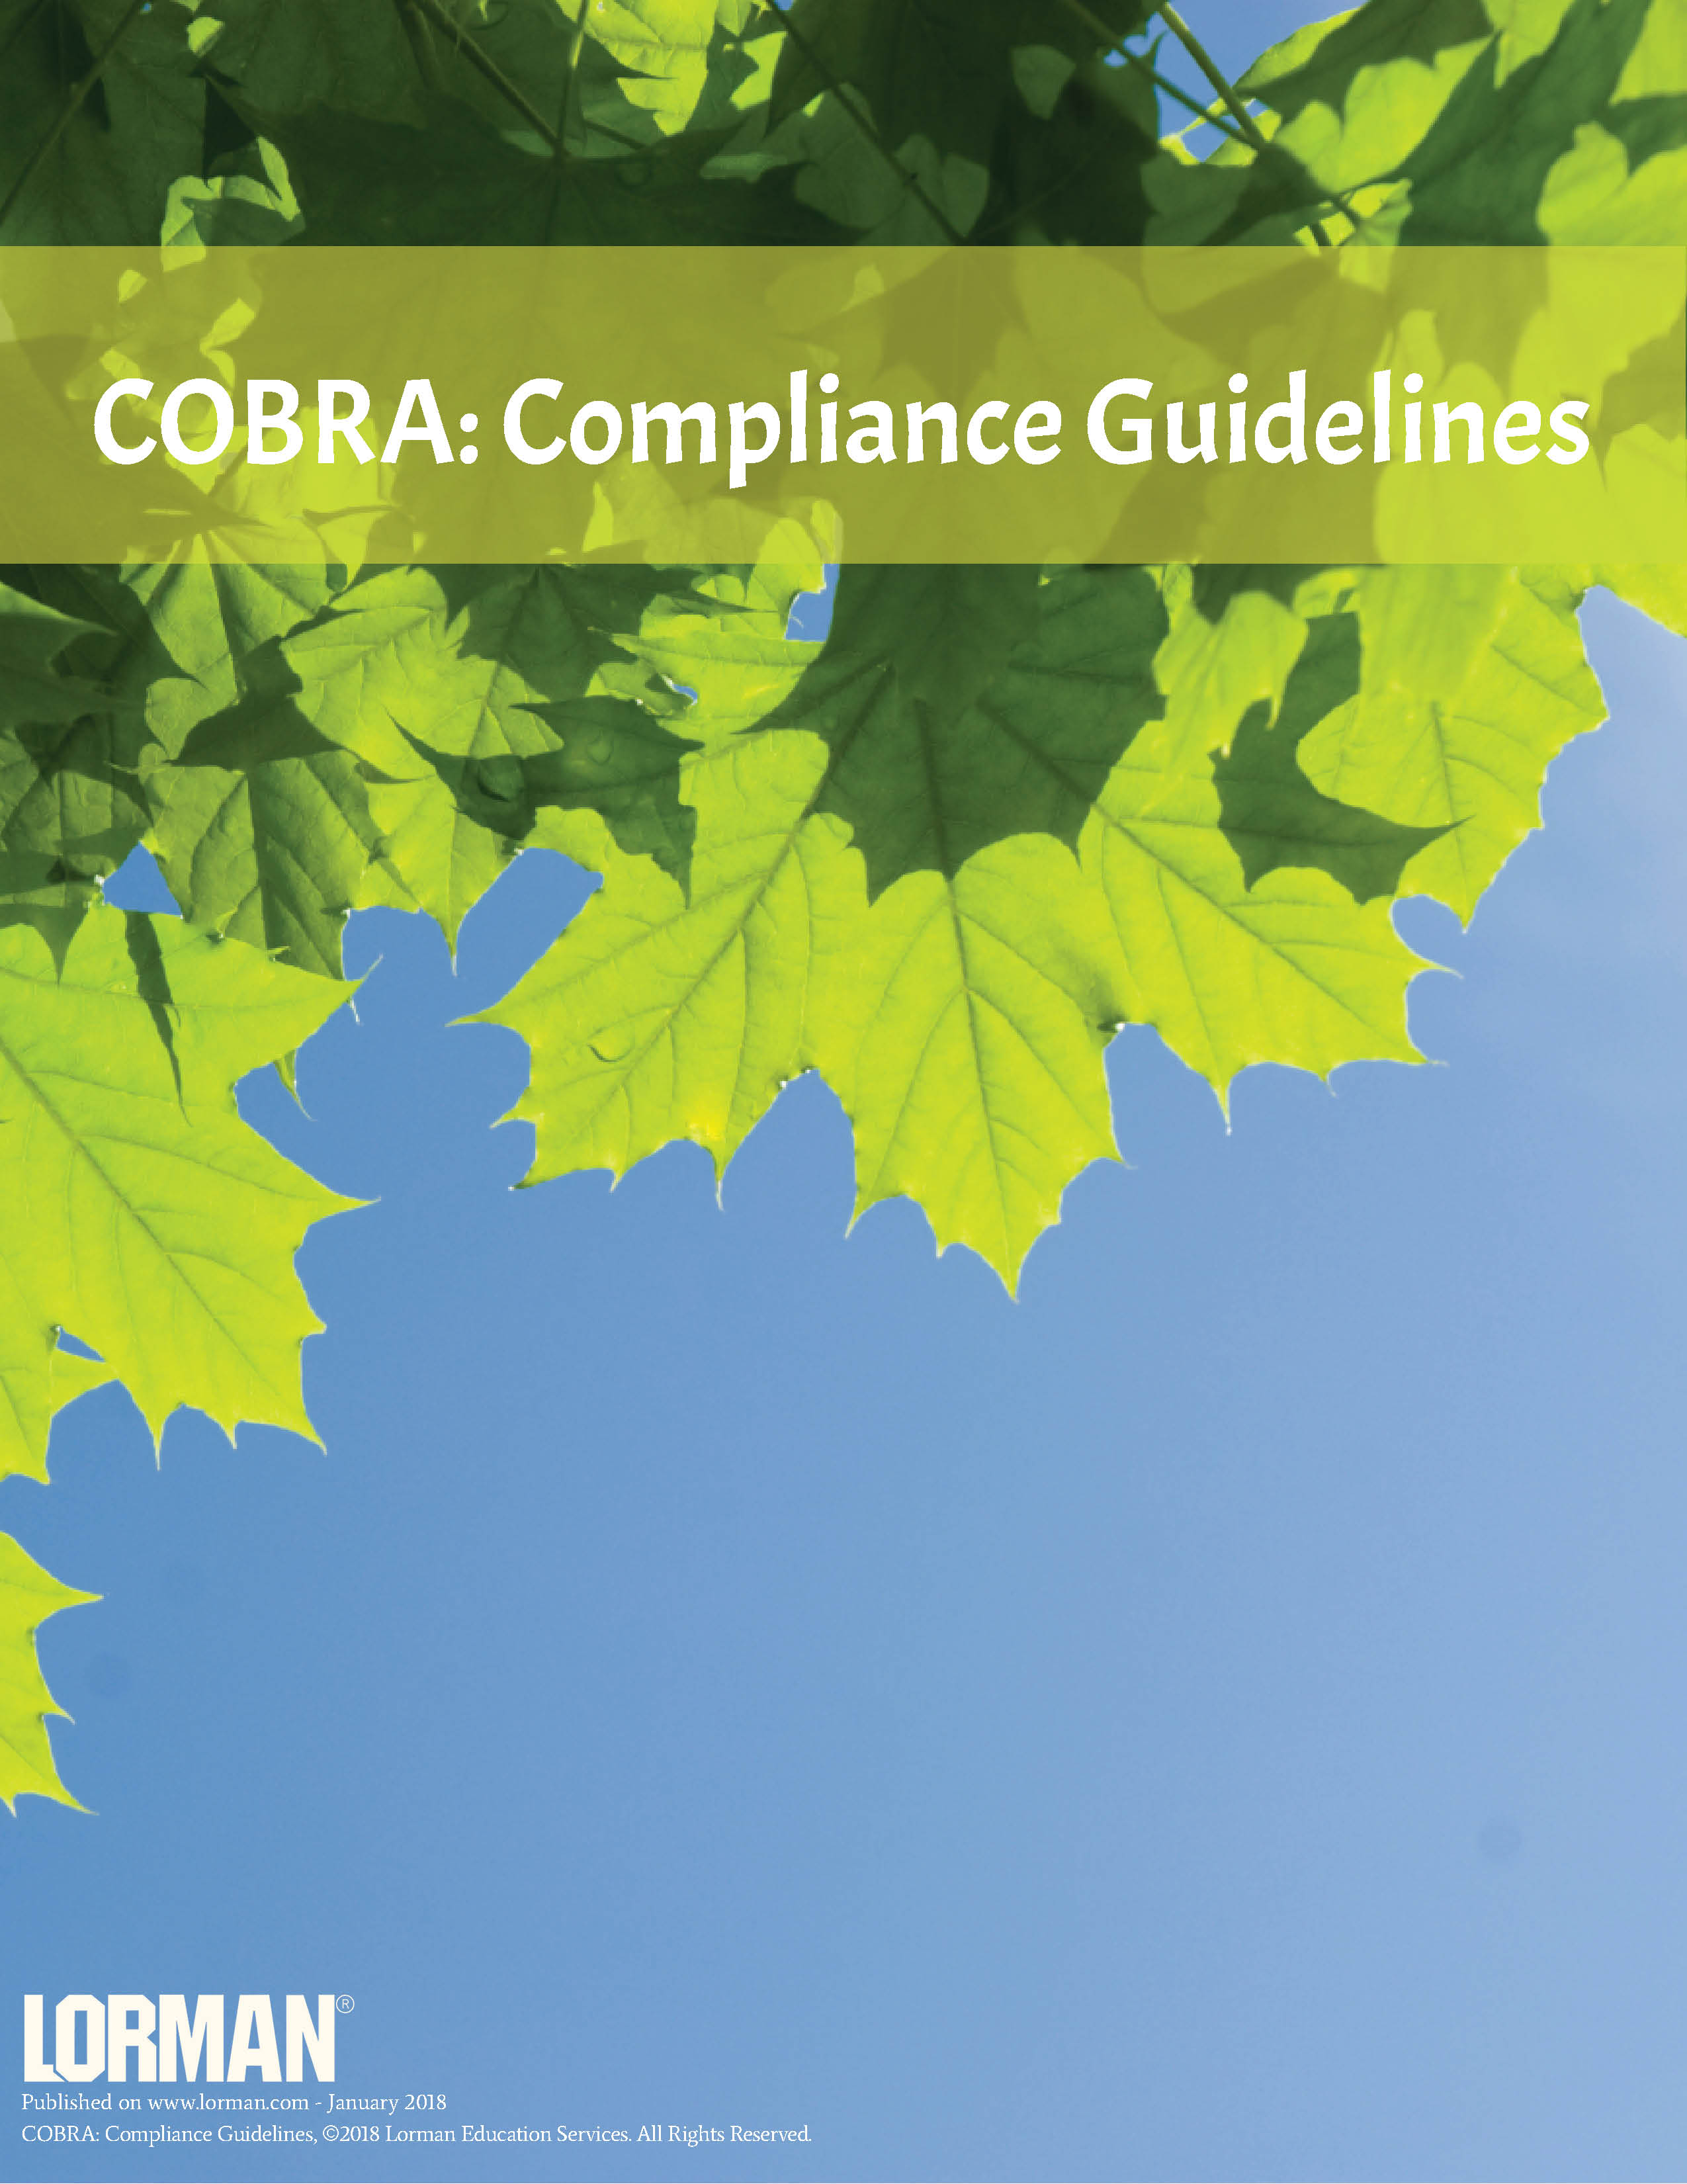 COBRA: Compliance Guidelines